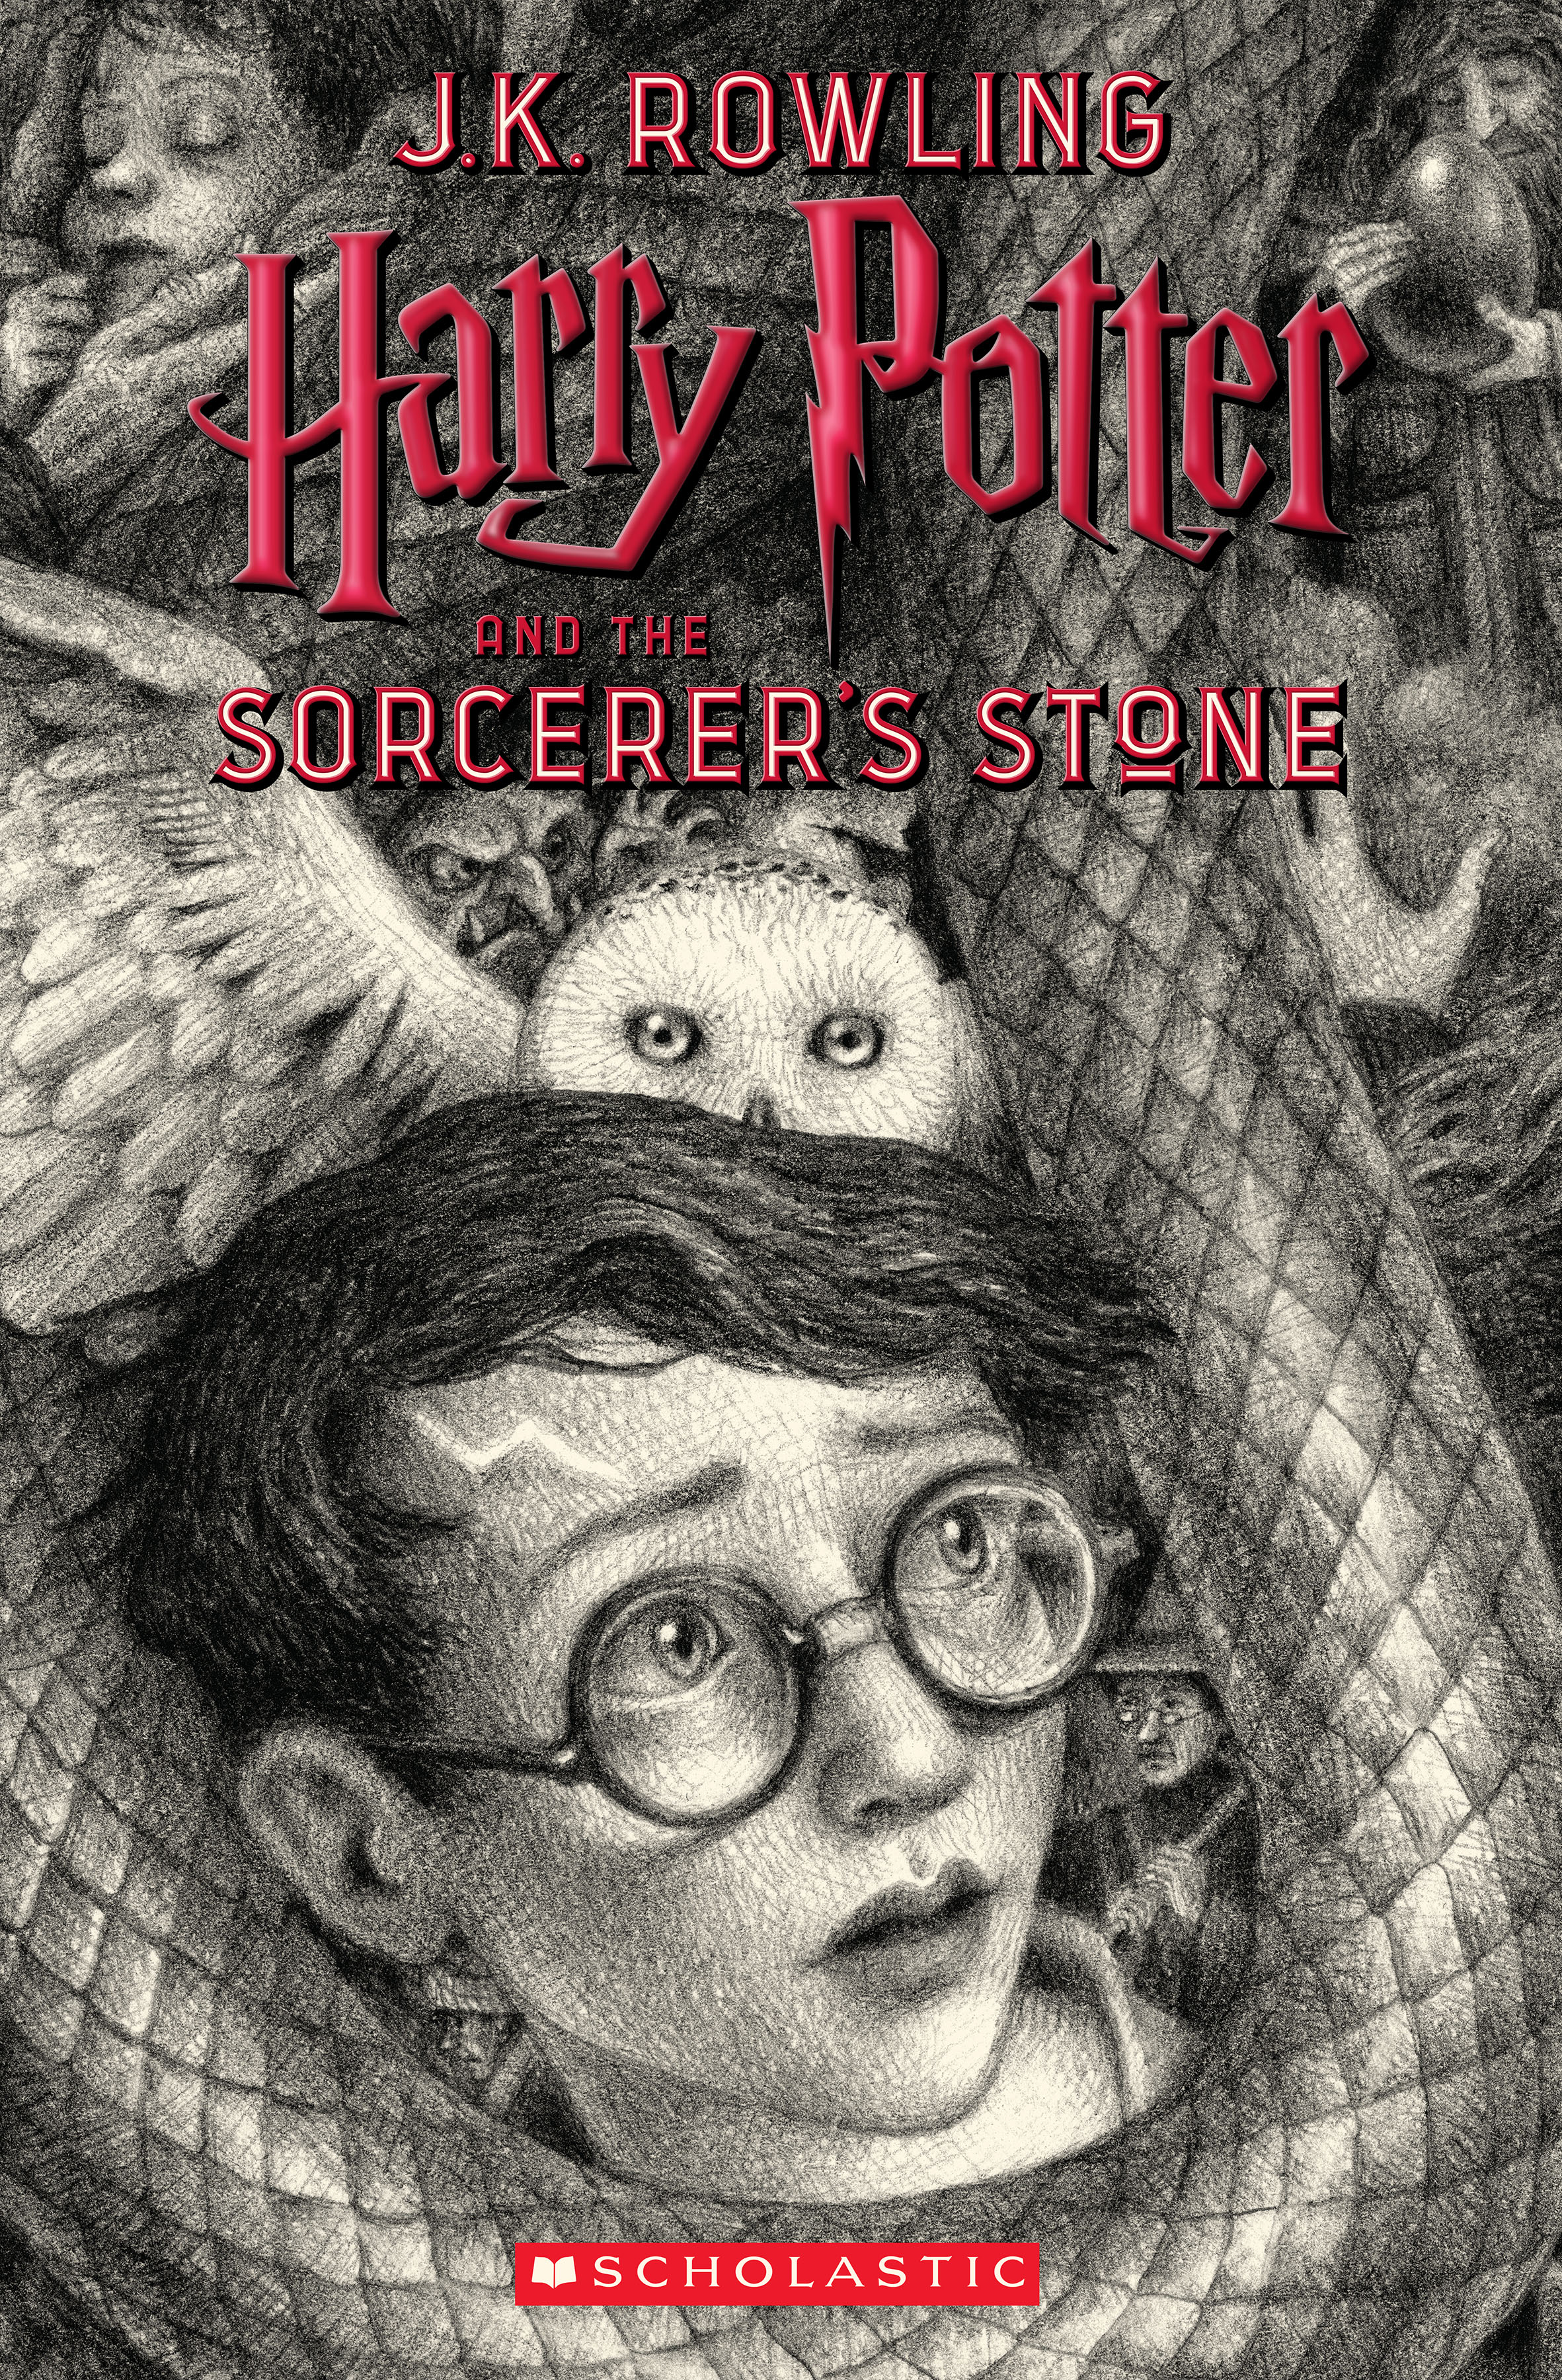 Harry Potter | Scholastic Media Room